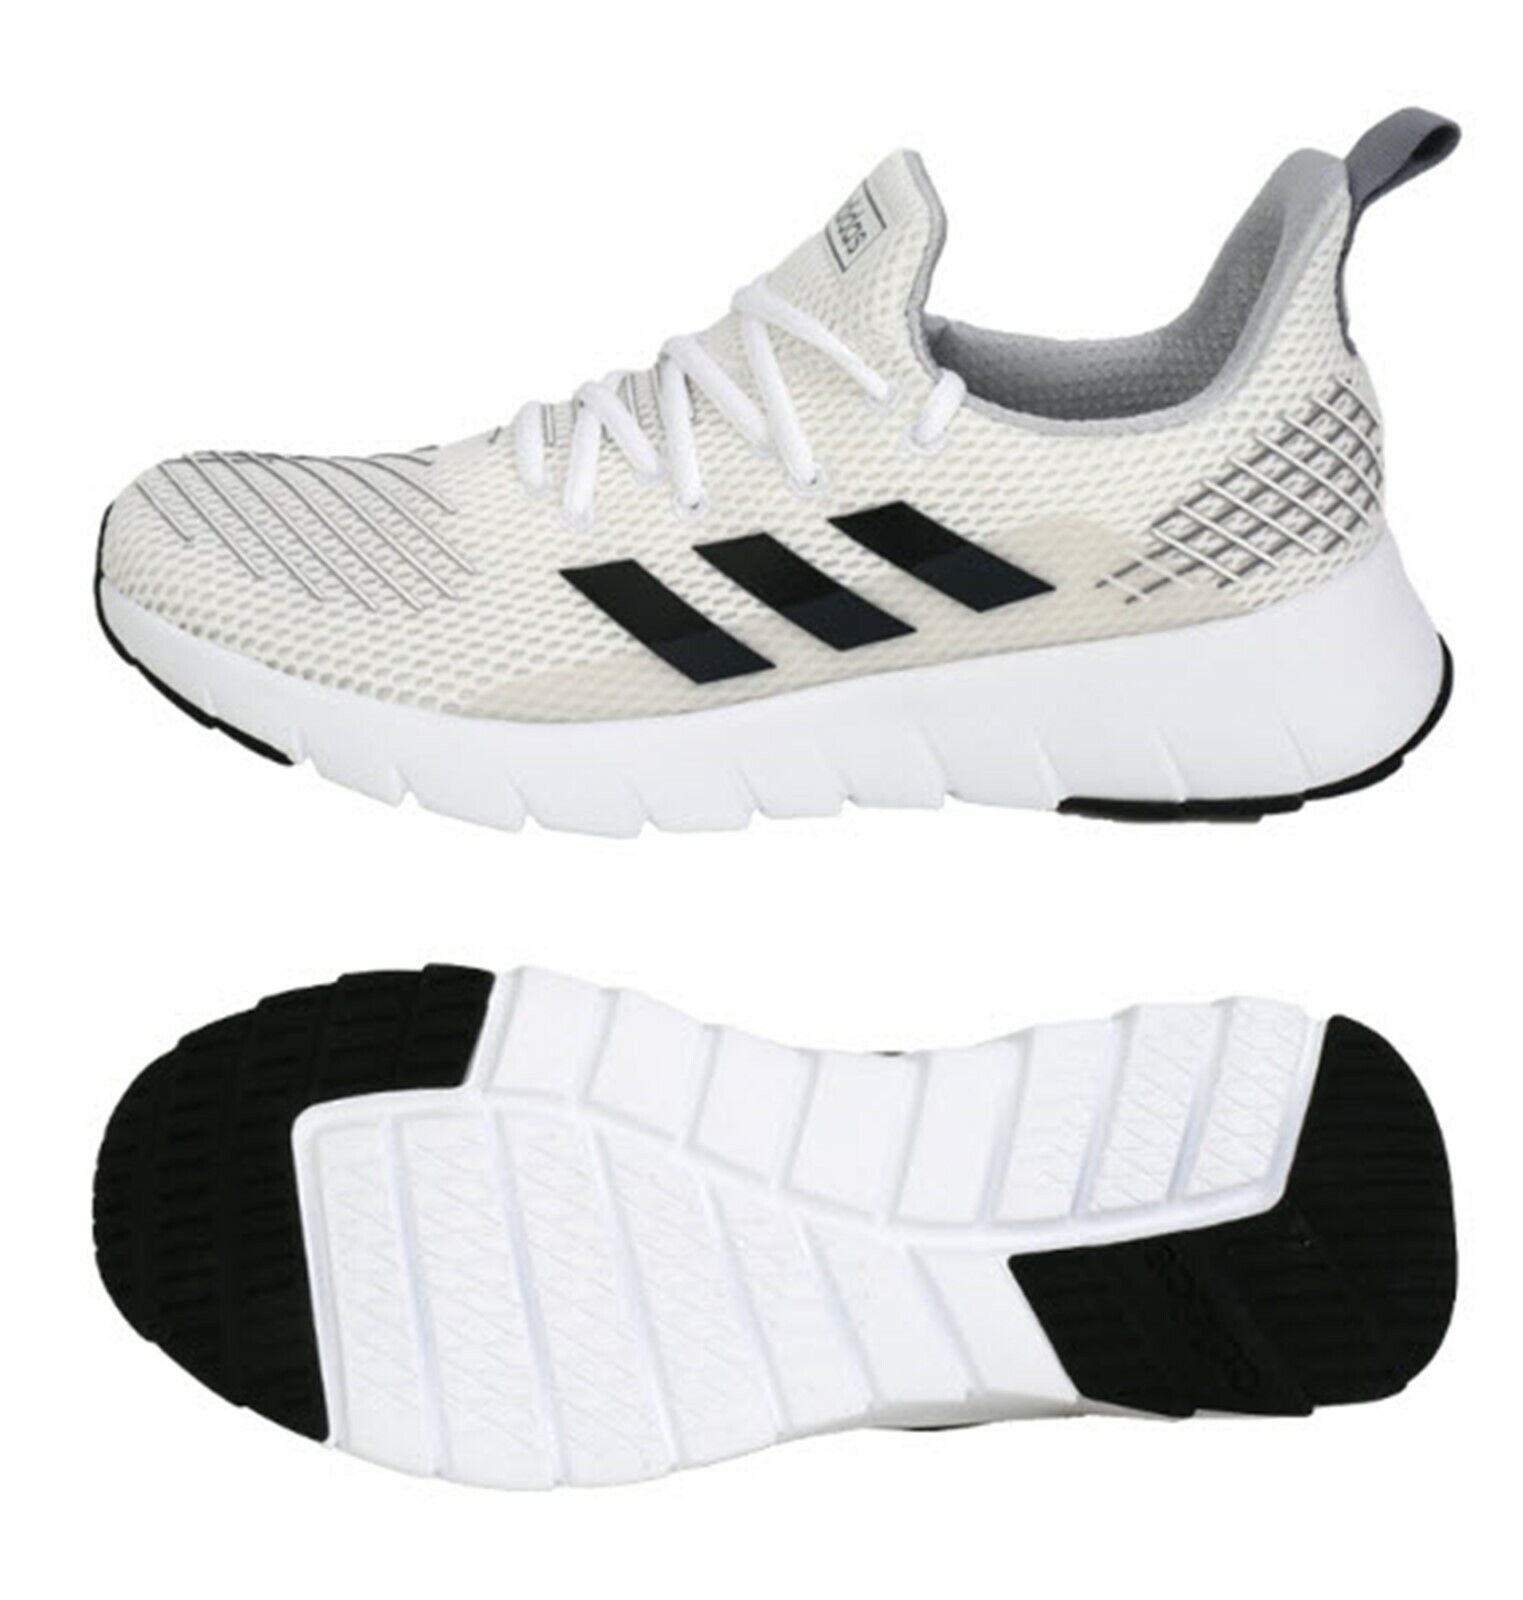 Adidas Men Asweego shoes Running White Sneakers Boot Casual GYM shoes F35445